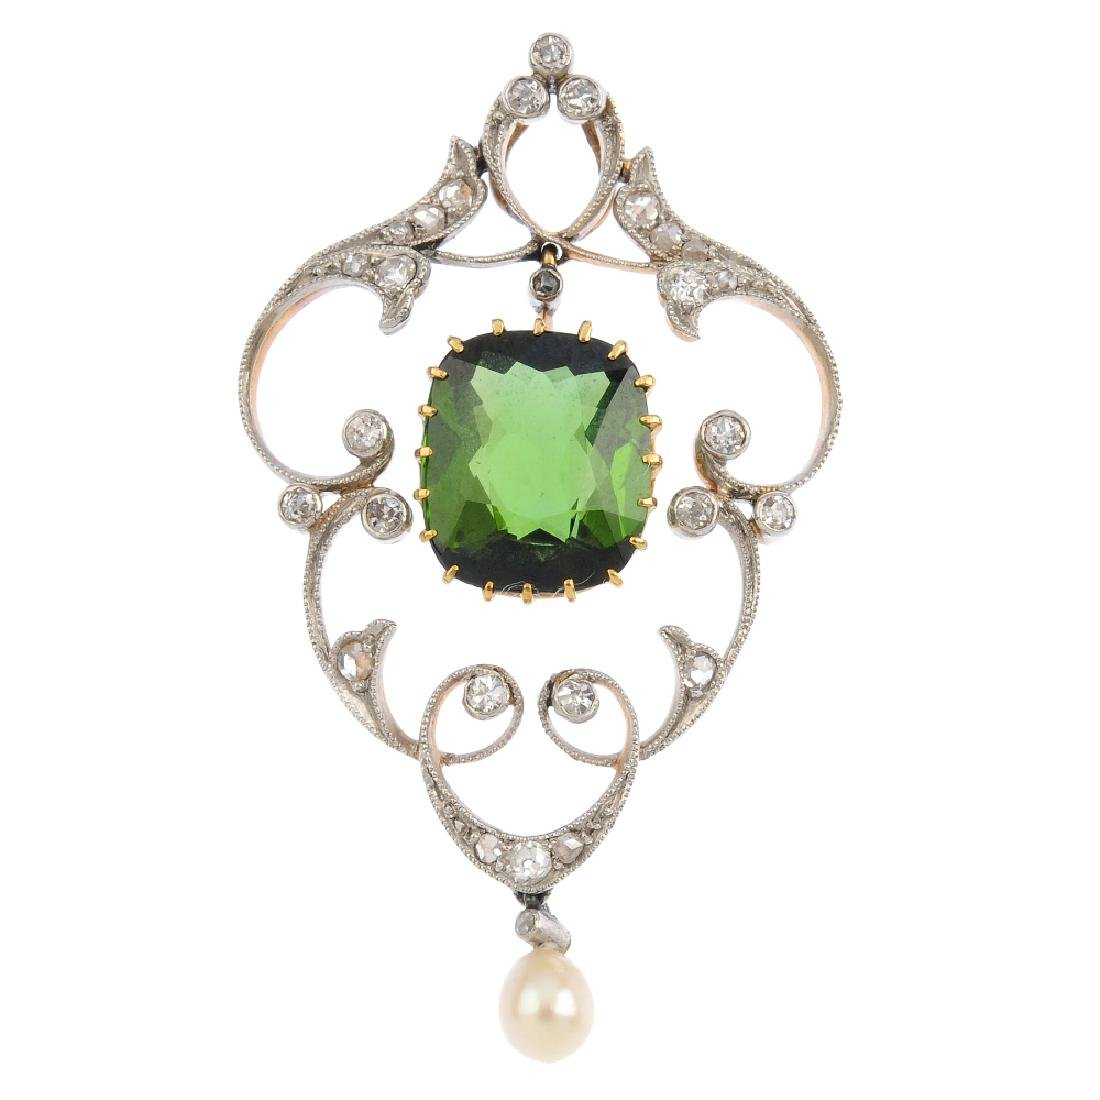 An Edwardian 15ct gold and silver, gem-set pendant. The